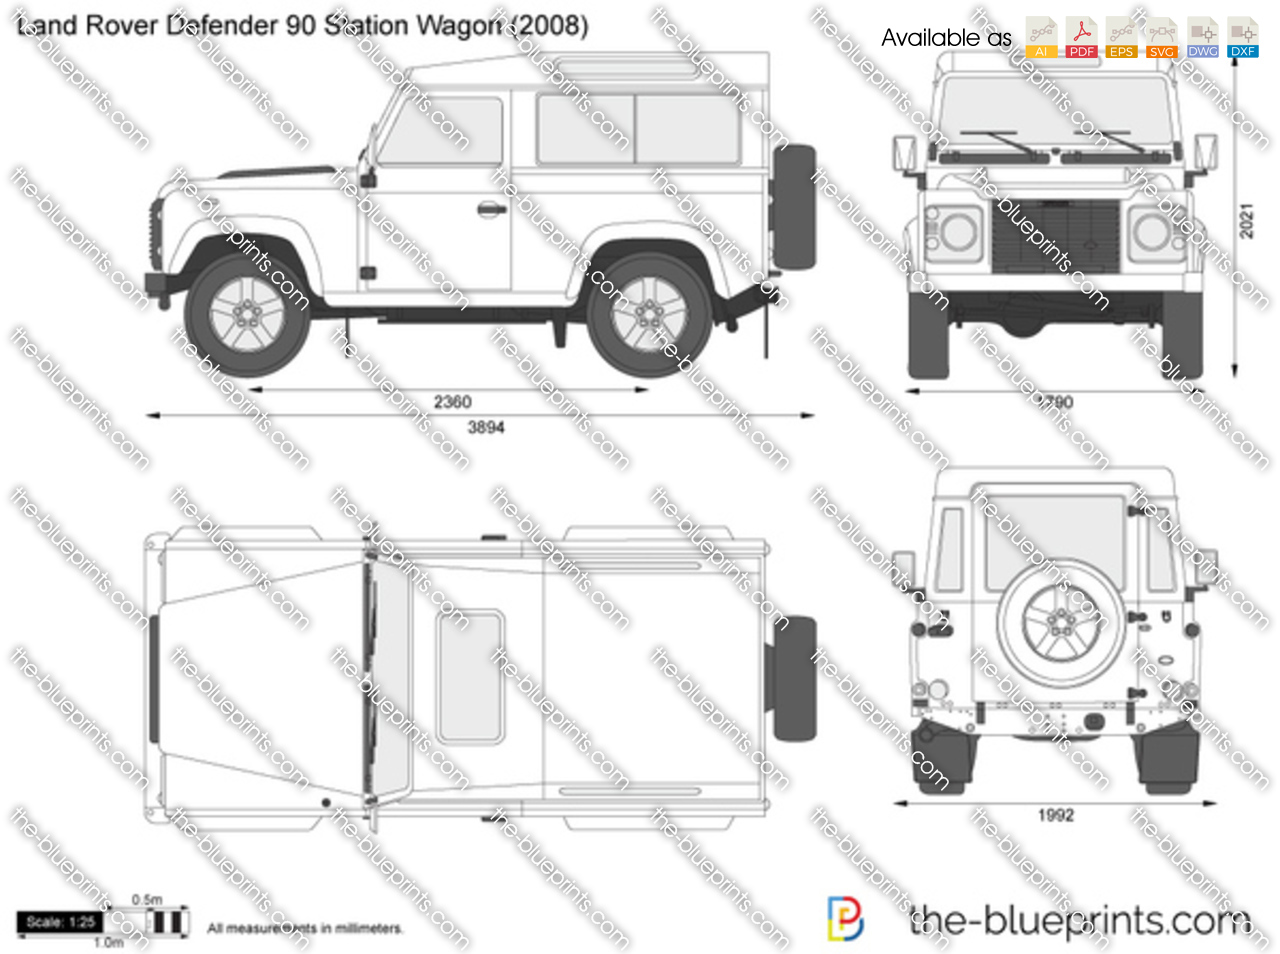 Land Rover Defender 90 Station Wagon 2005